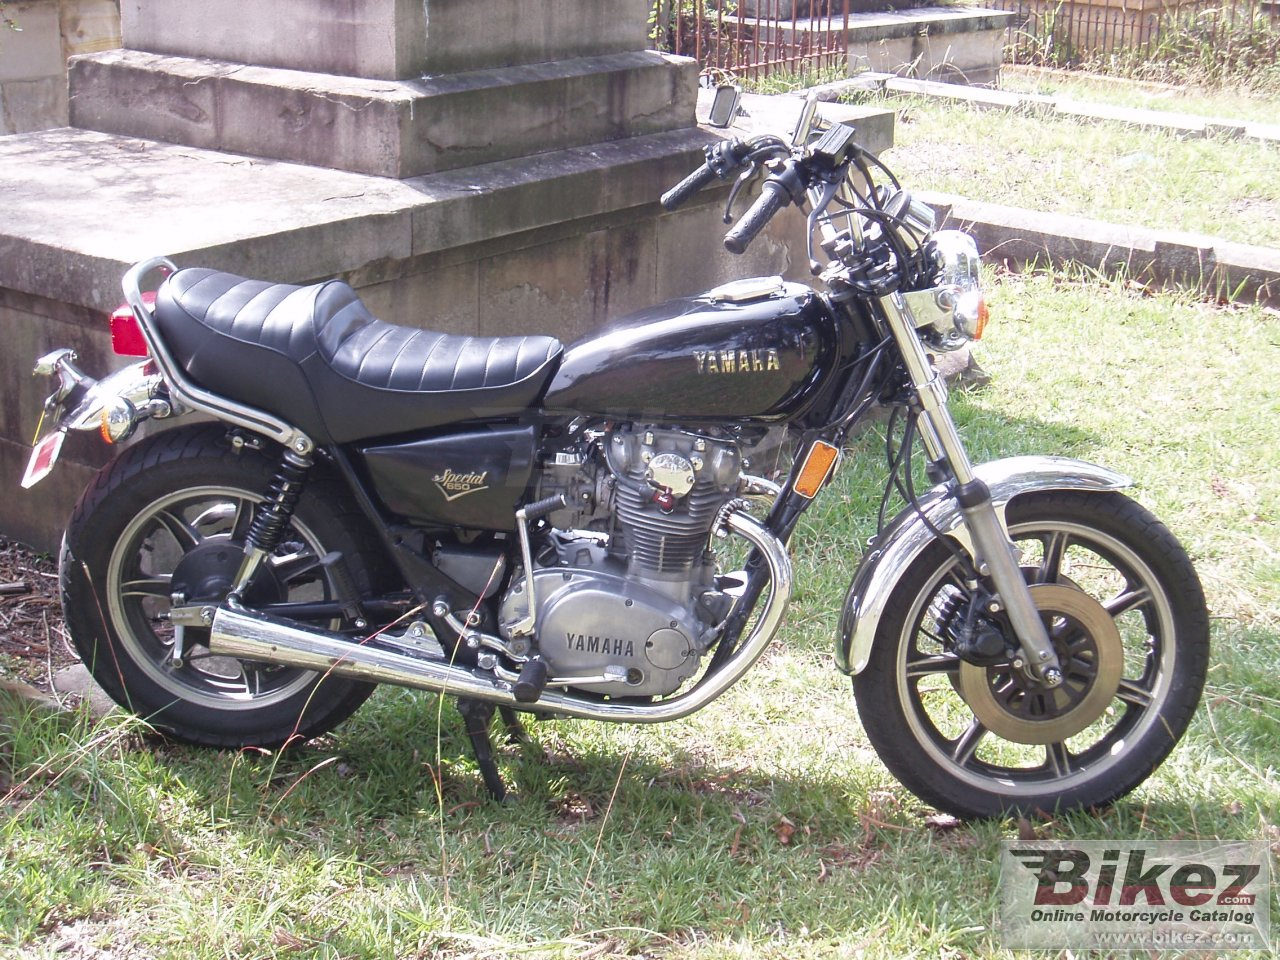 Big nymous user. xs 650 picture and wallpaper from Bikez.com